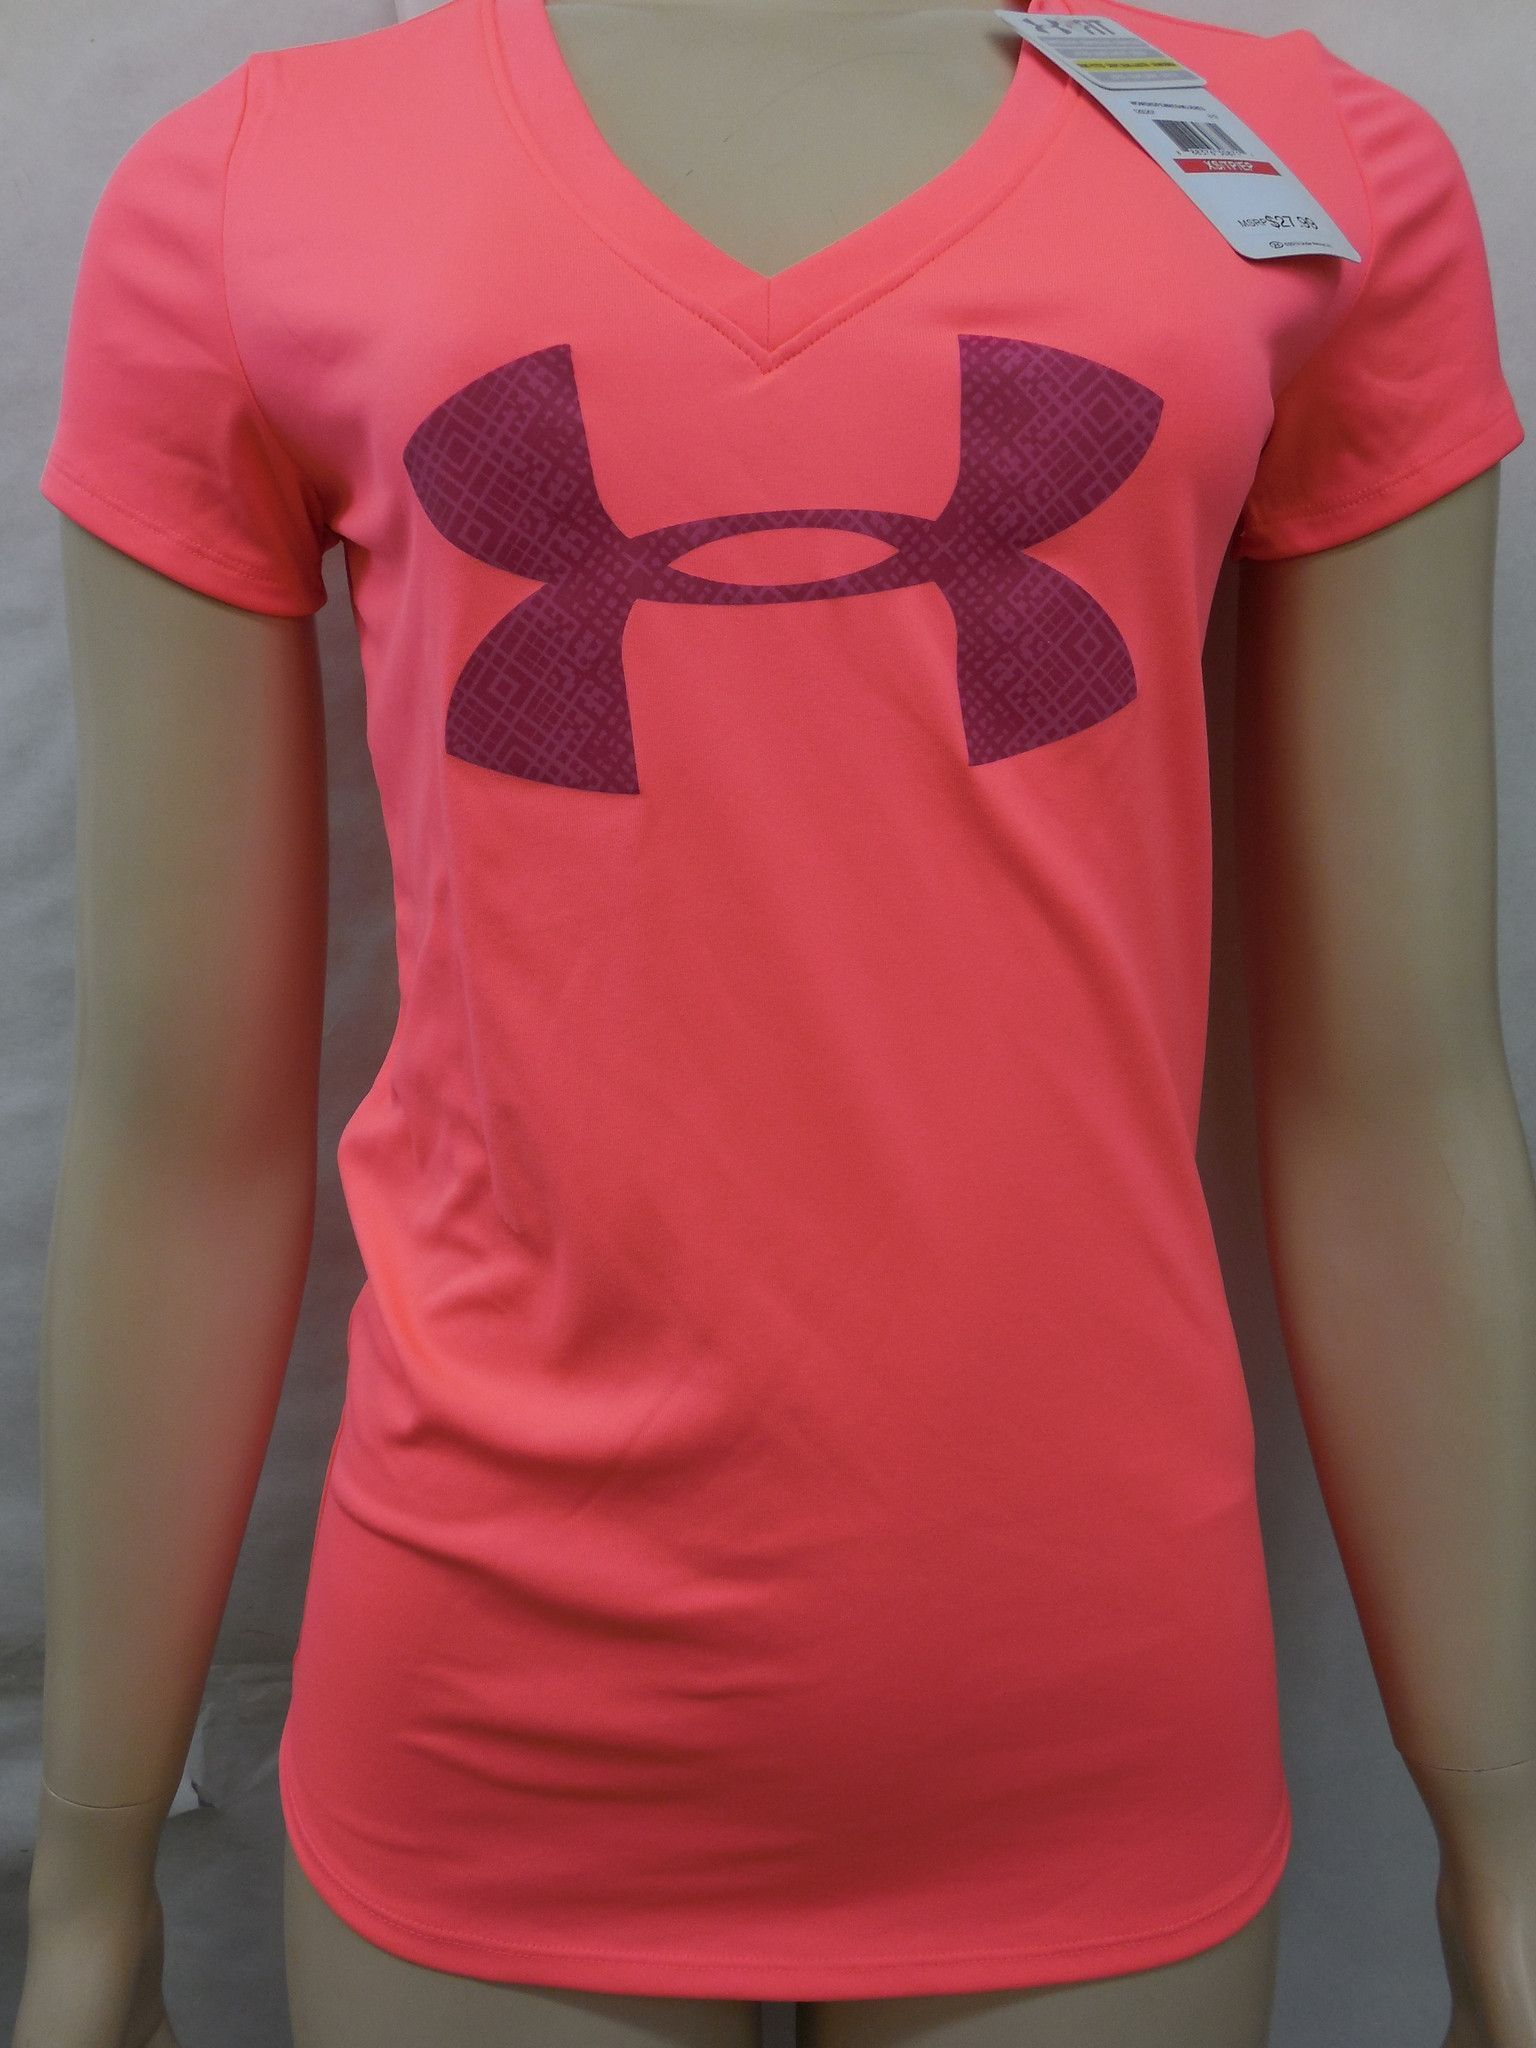 Under Armour Womens Pink Heatgear Semi Fitted V Neck Tee T Shirt